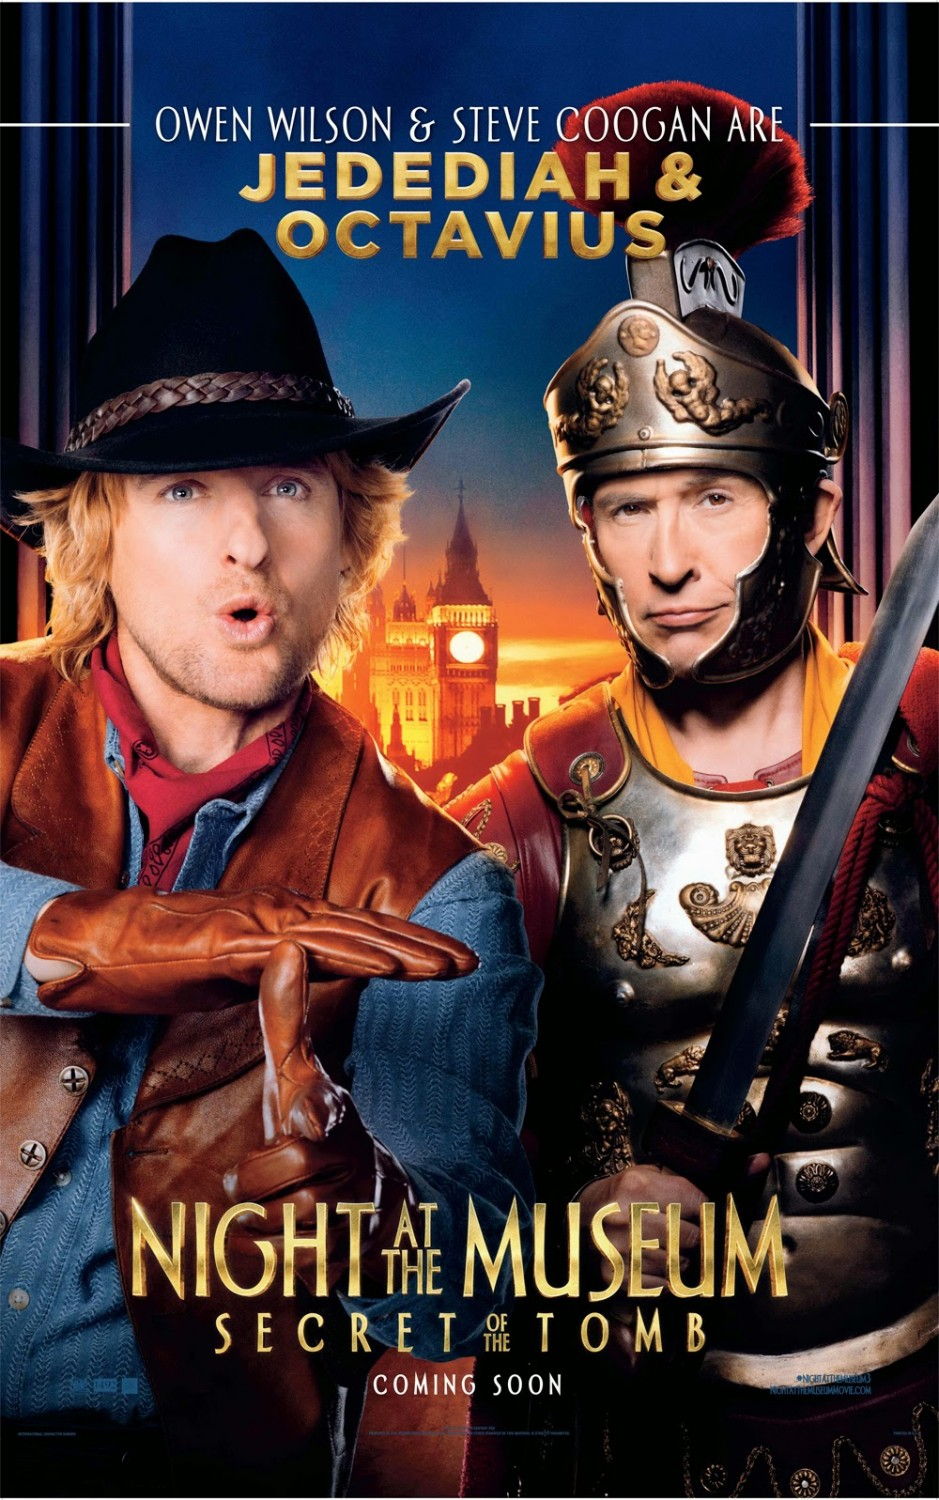 night at the museum 3 full movie in hindi dubbed download 720p